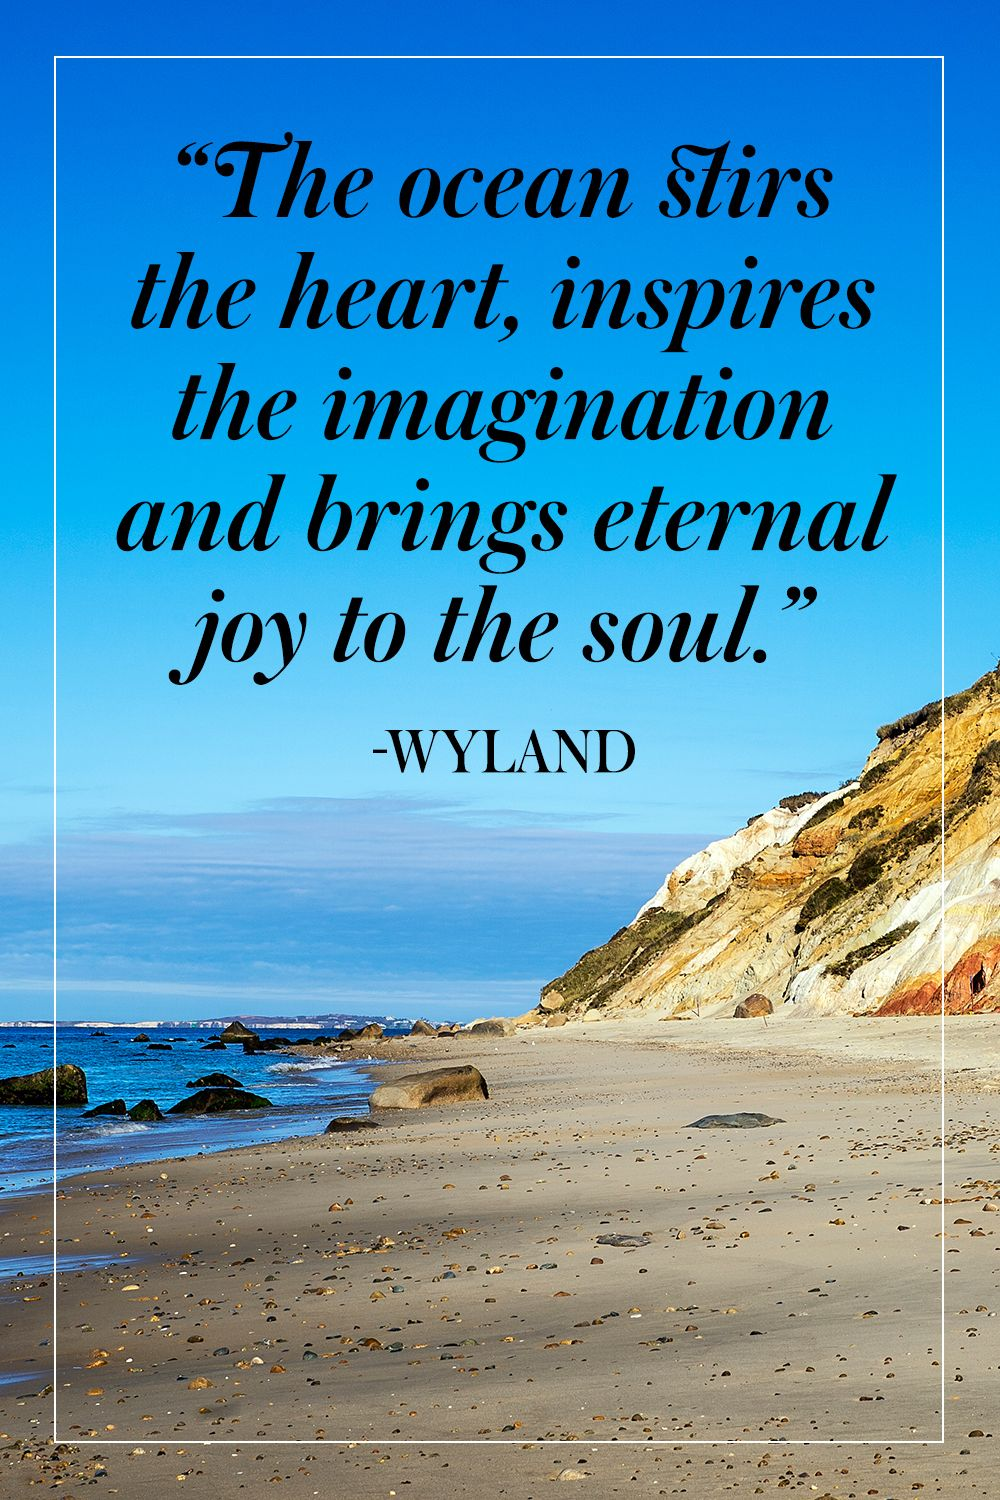 10 Inspiring Quotes About The Ocean Ocean quotes, Beach